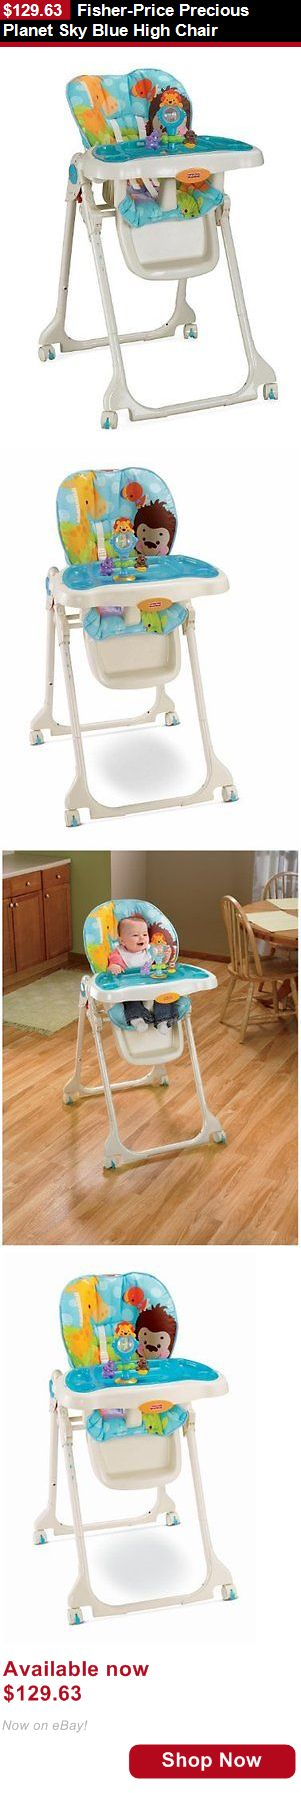 Baby high chairs fisher price precious planet sky blue high chair buy